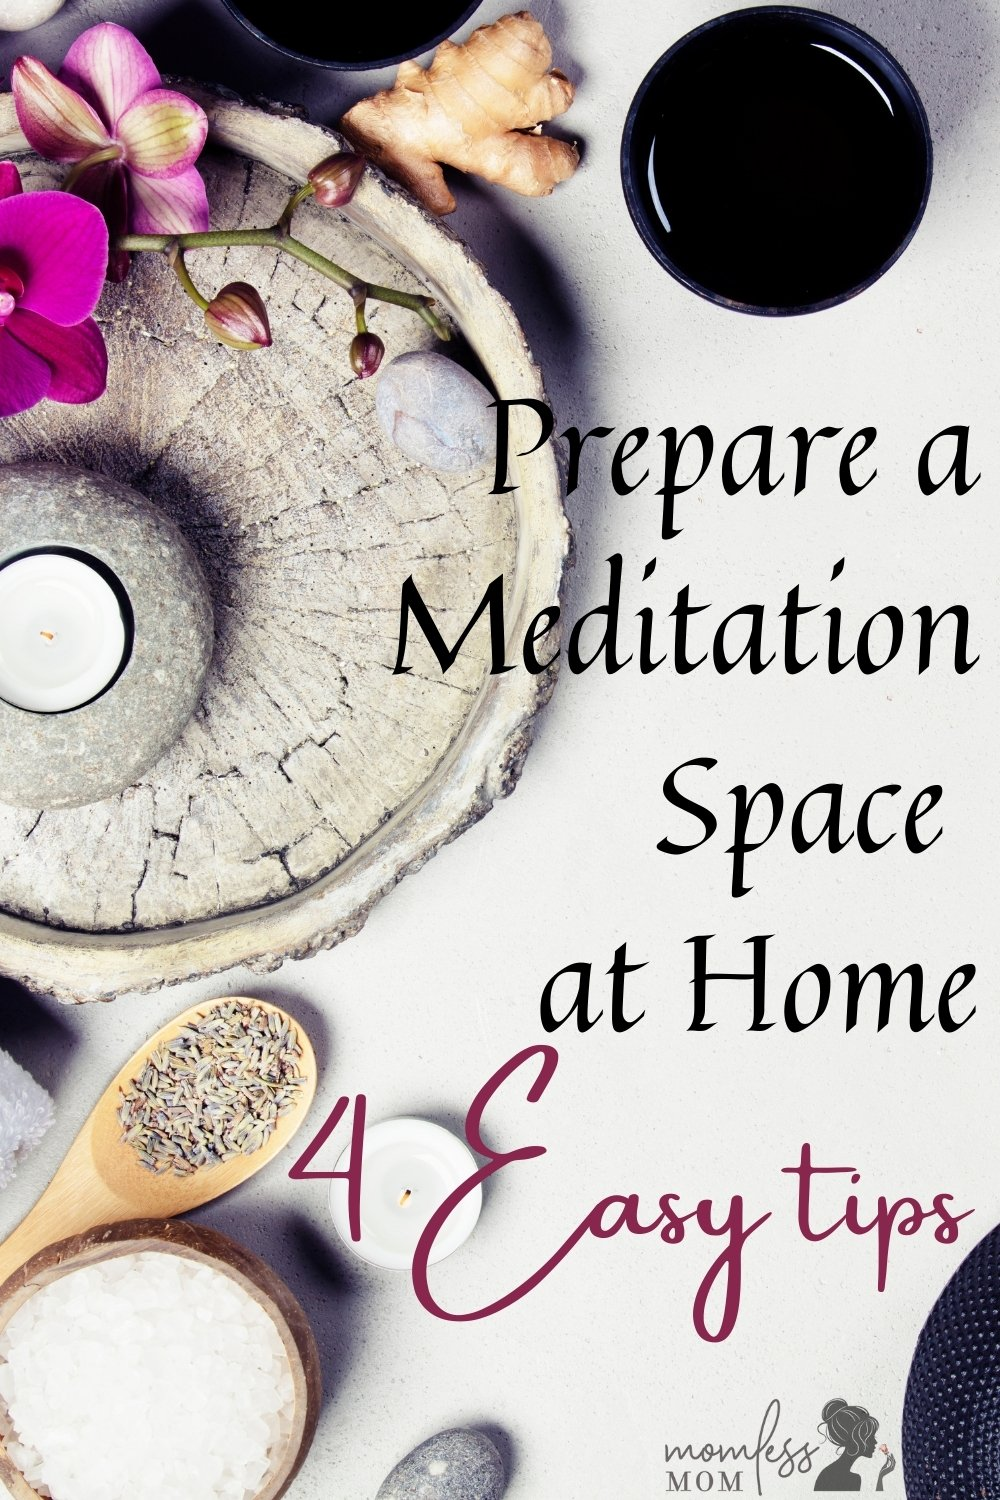 Prepare a meditation space at home